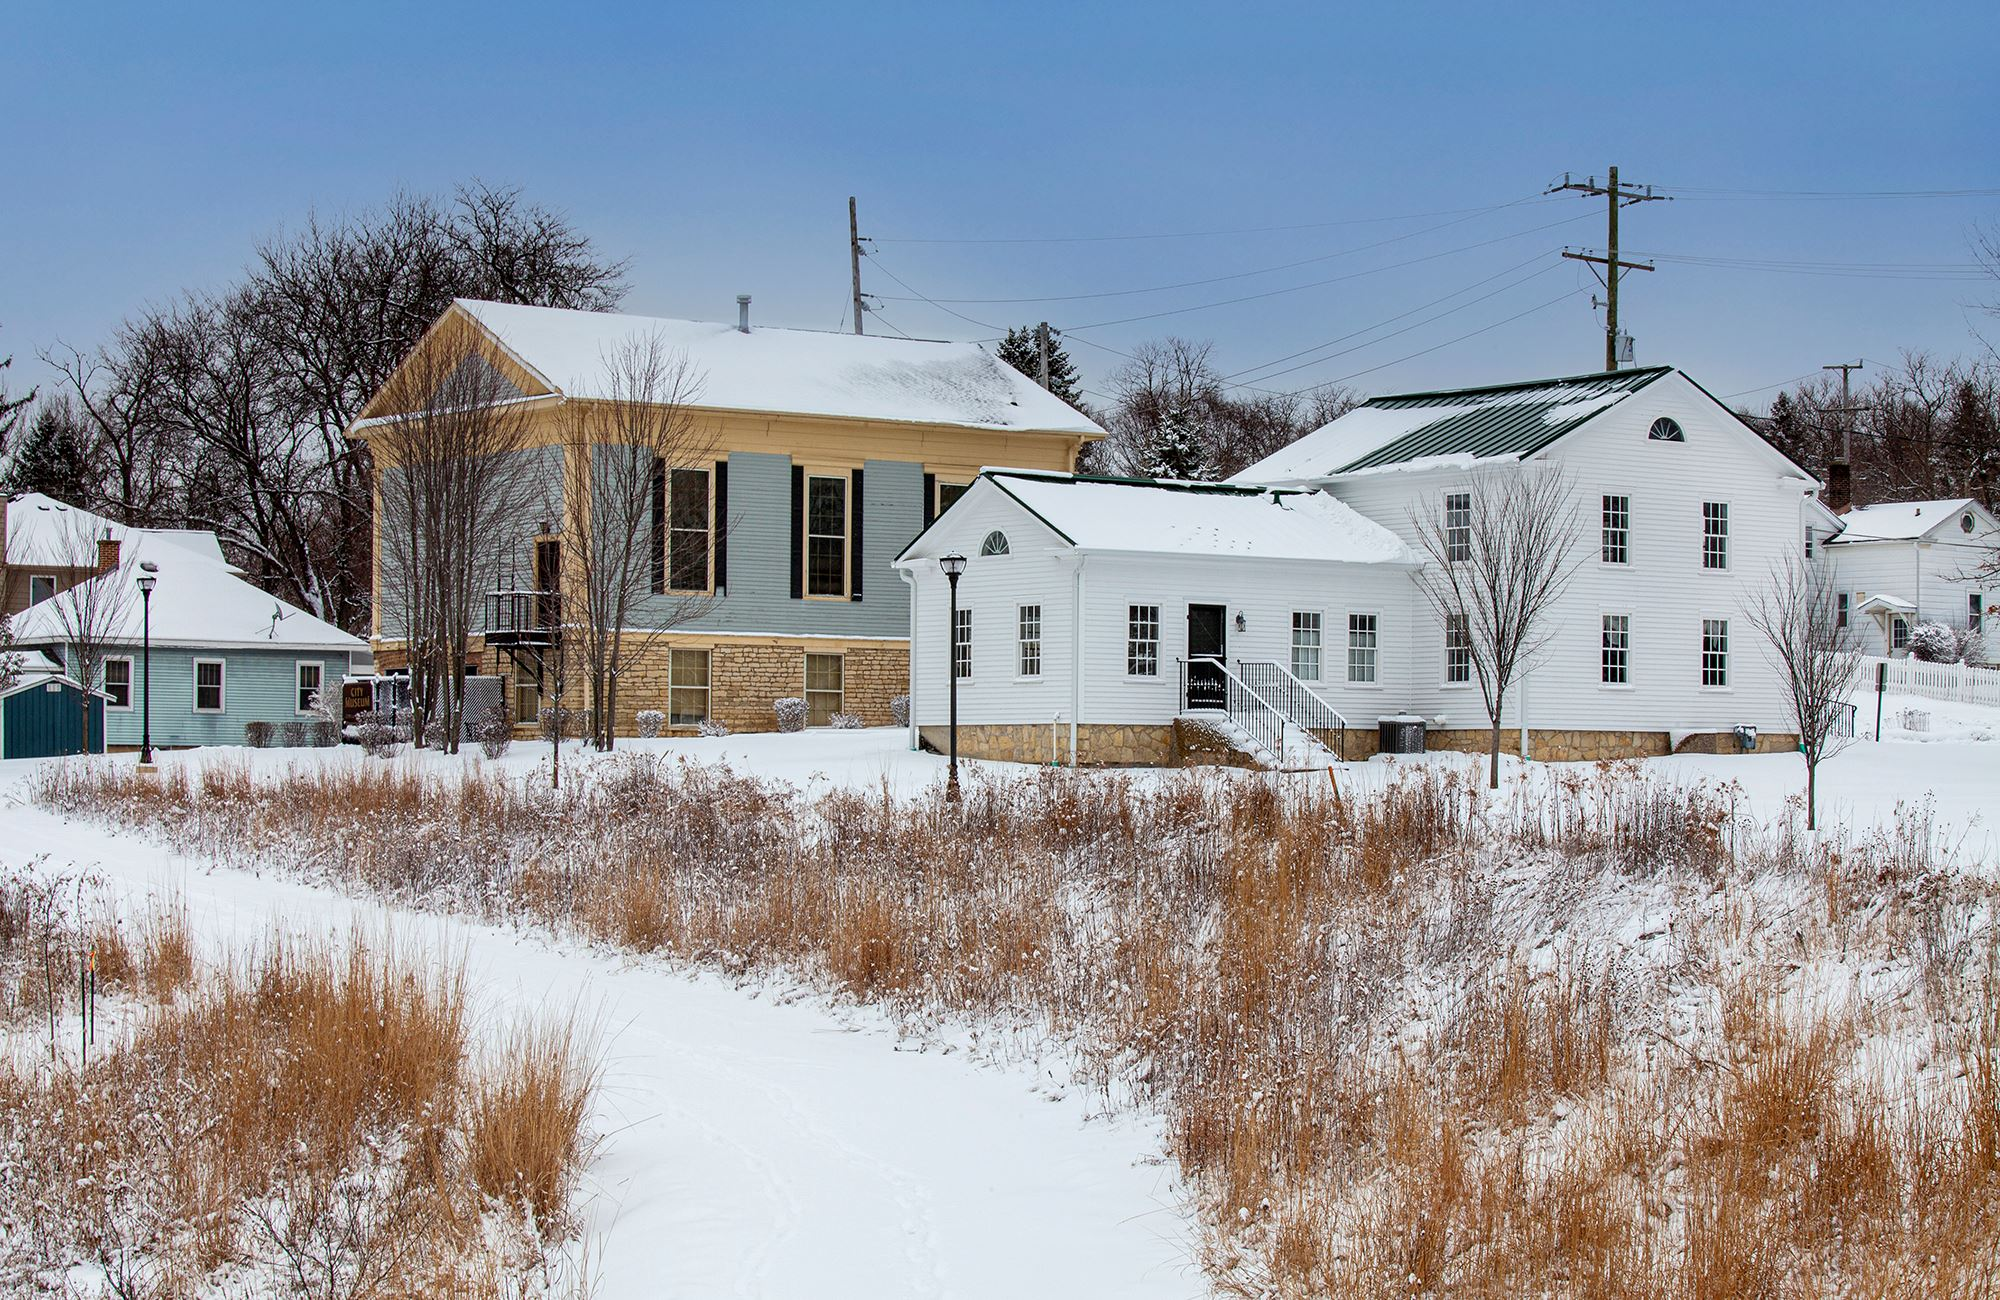 Photo of the Warrenville Tavern and Historical Museum in Snow